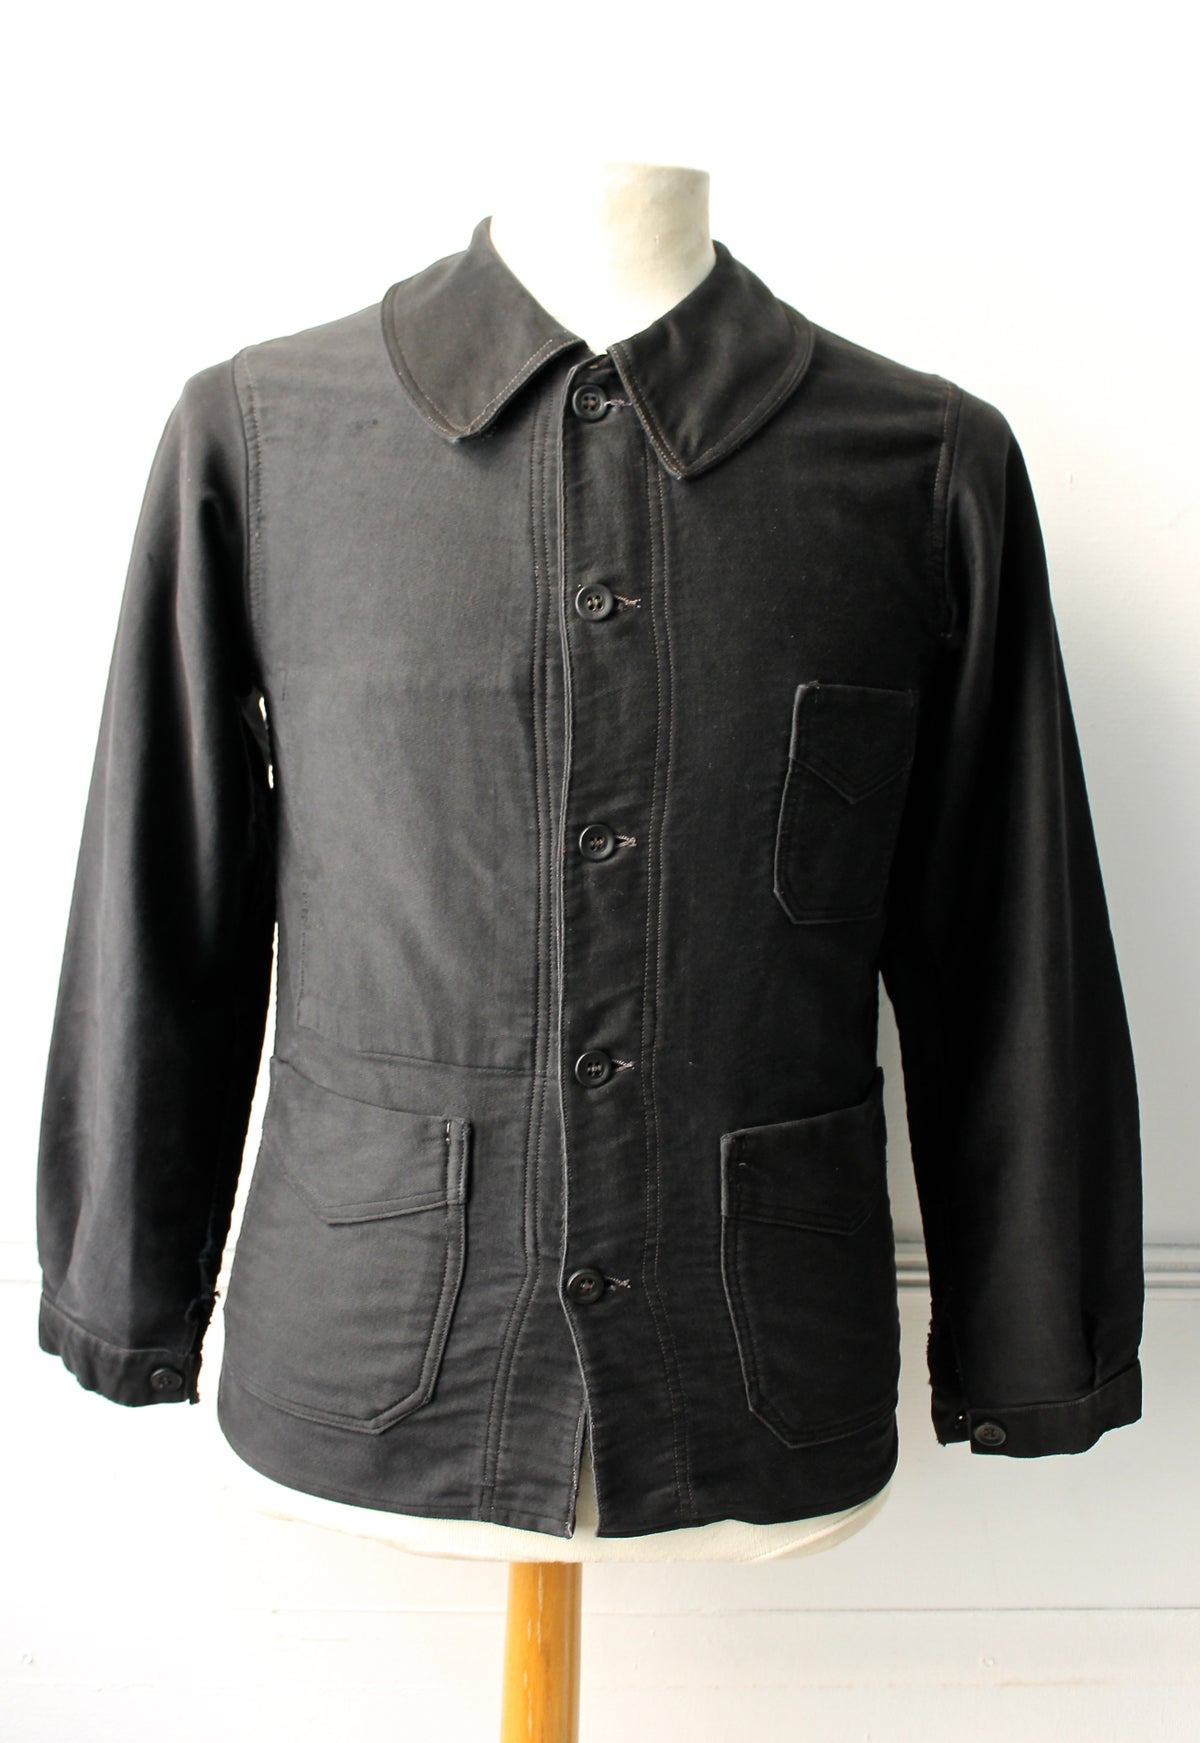 Image of 1910'S FRENCH BLACK MOLESKIN WORK JACKET FADED